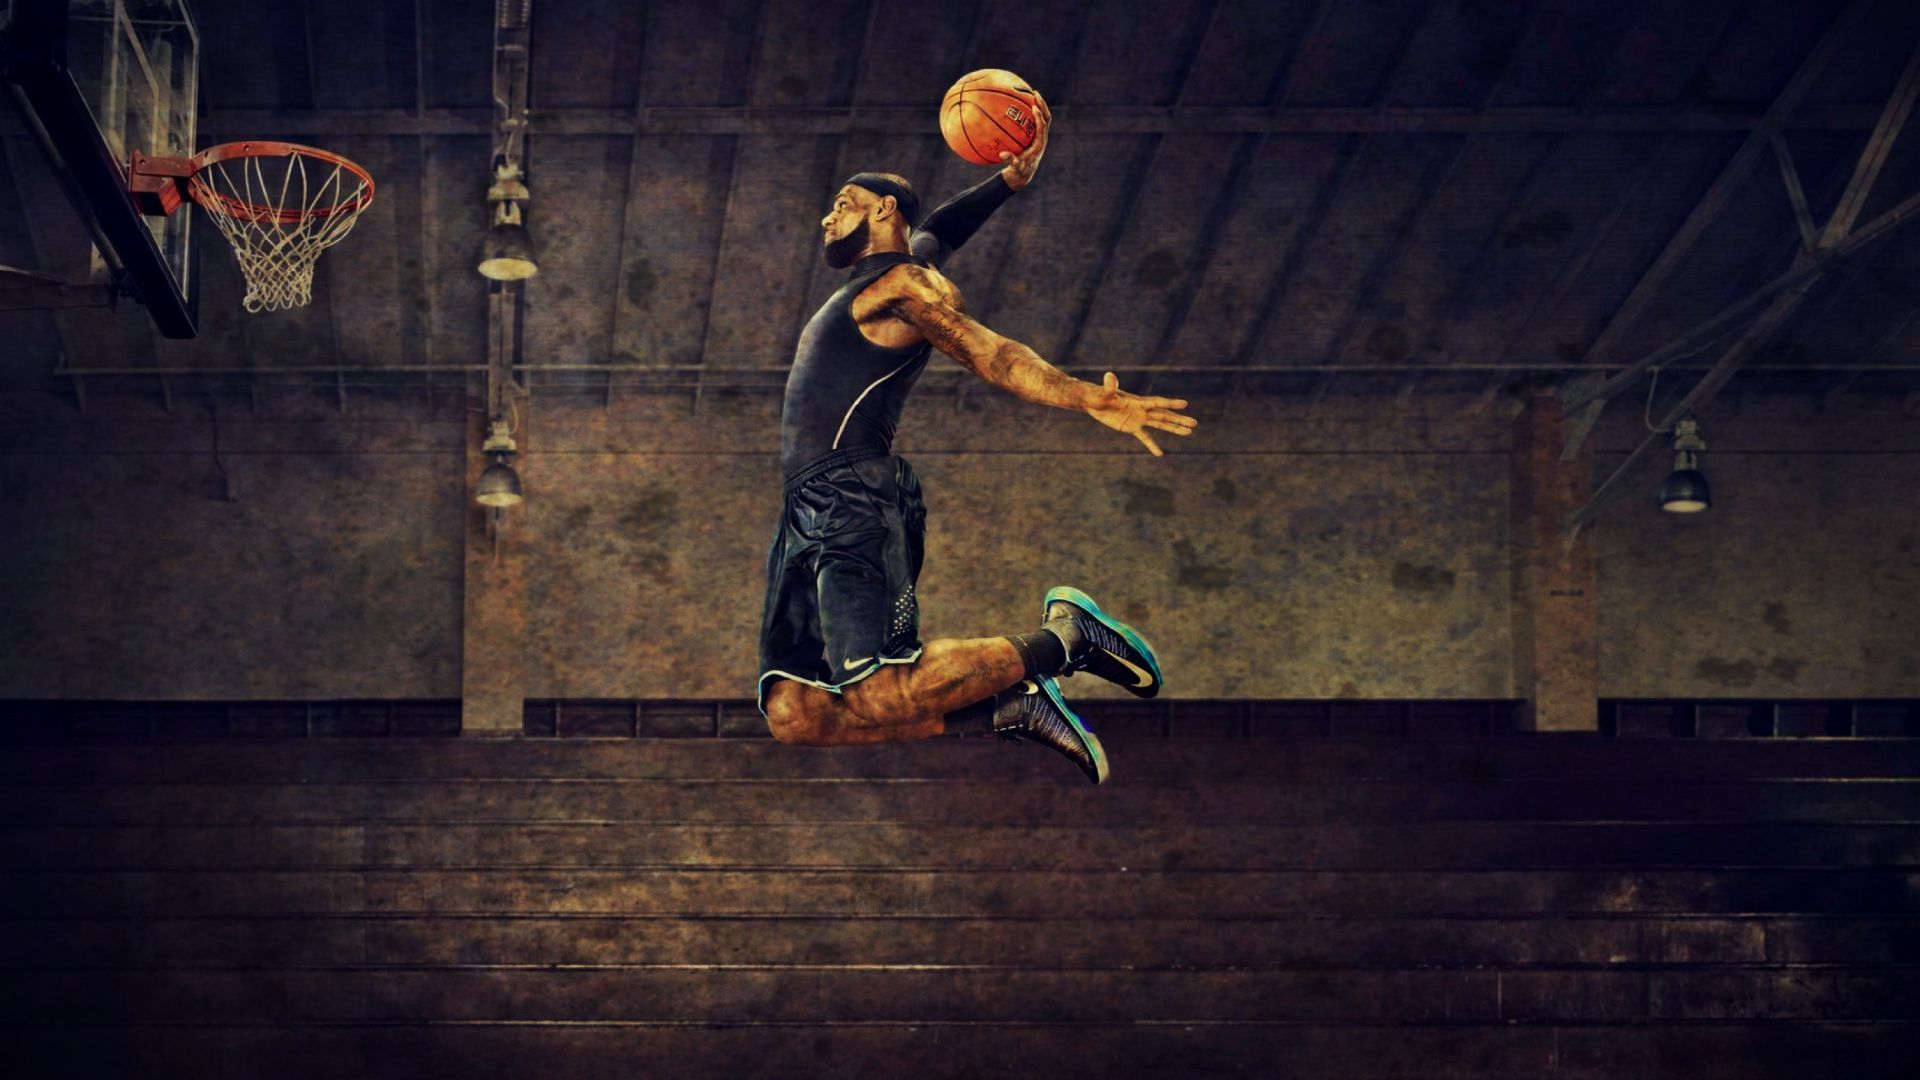 67 Lebron James Dunk Wallpaper On Wallpapersafari